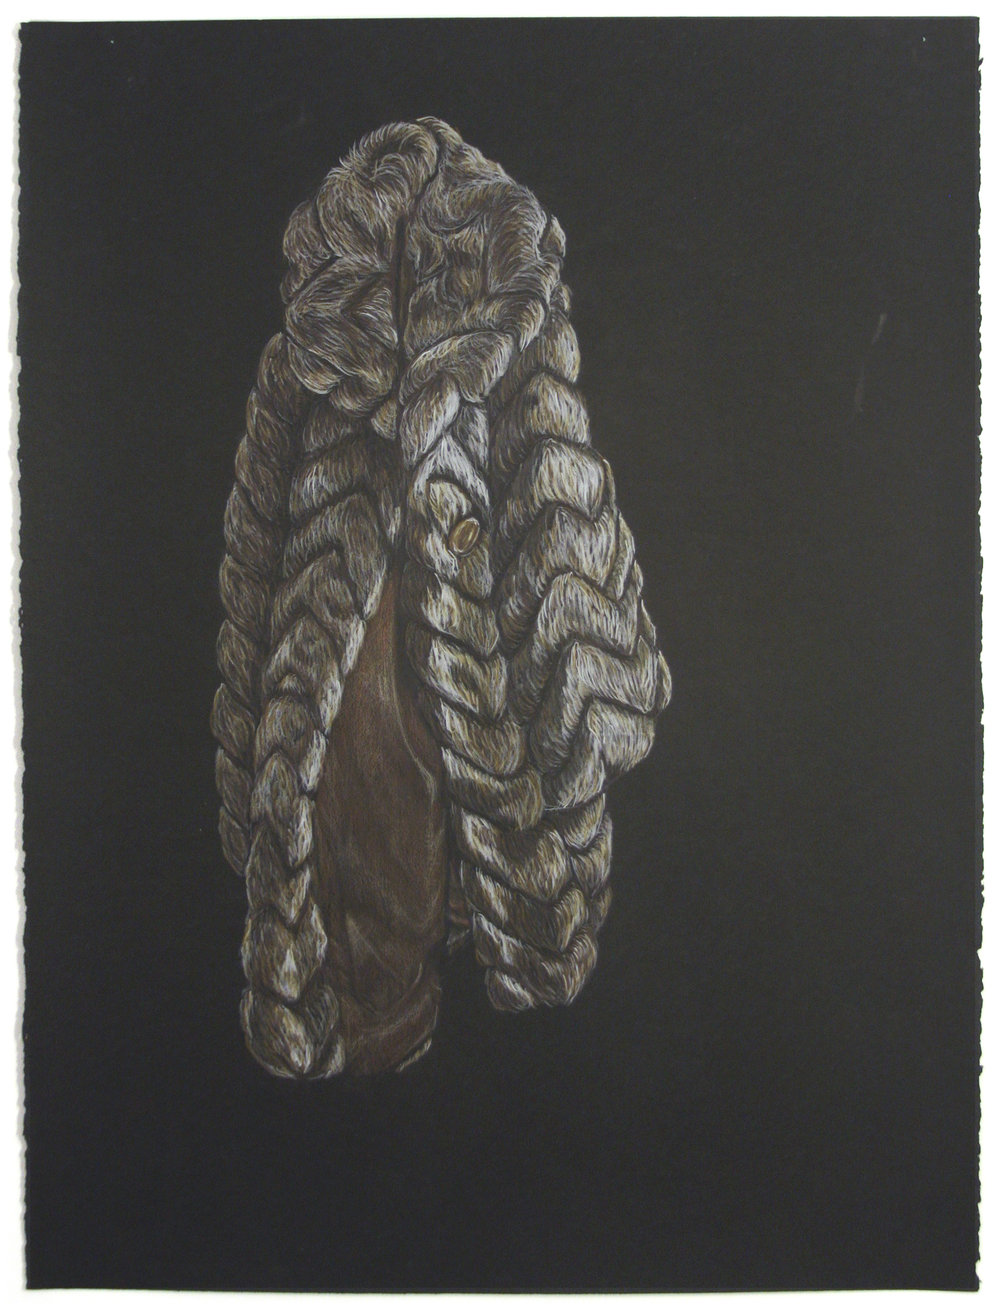 "FUR COAT 22"" x 30"" Colour Pencil on Paper $700.00 